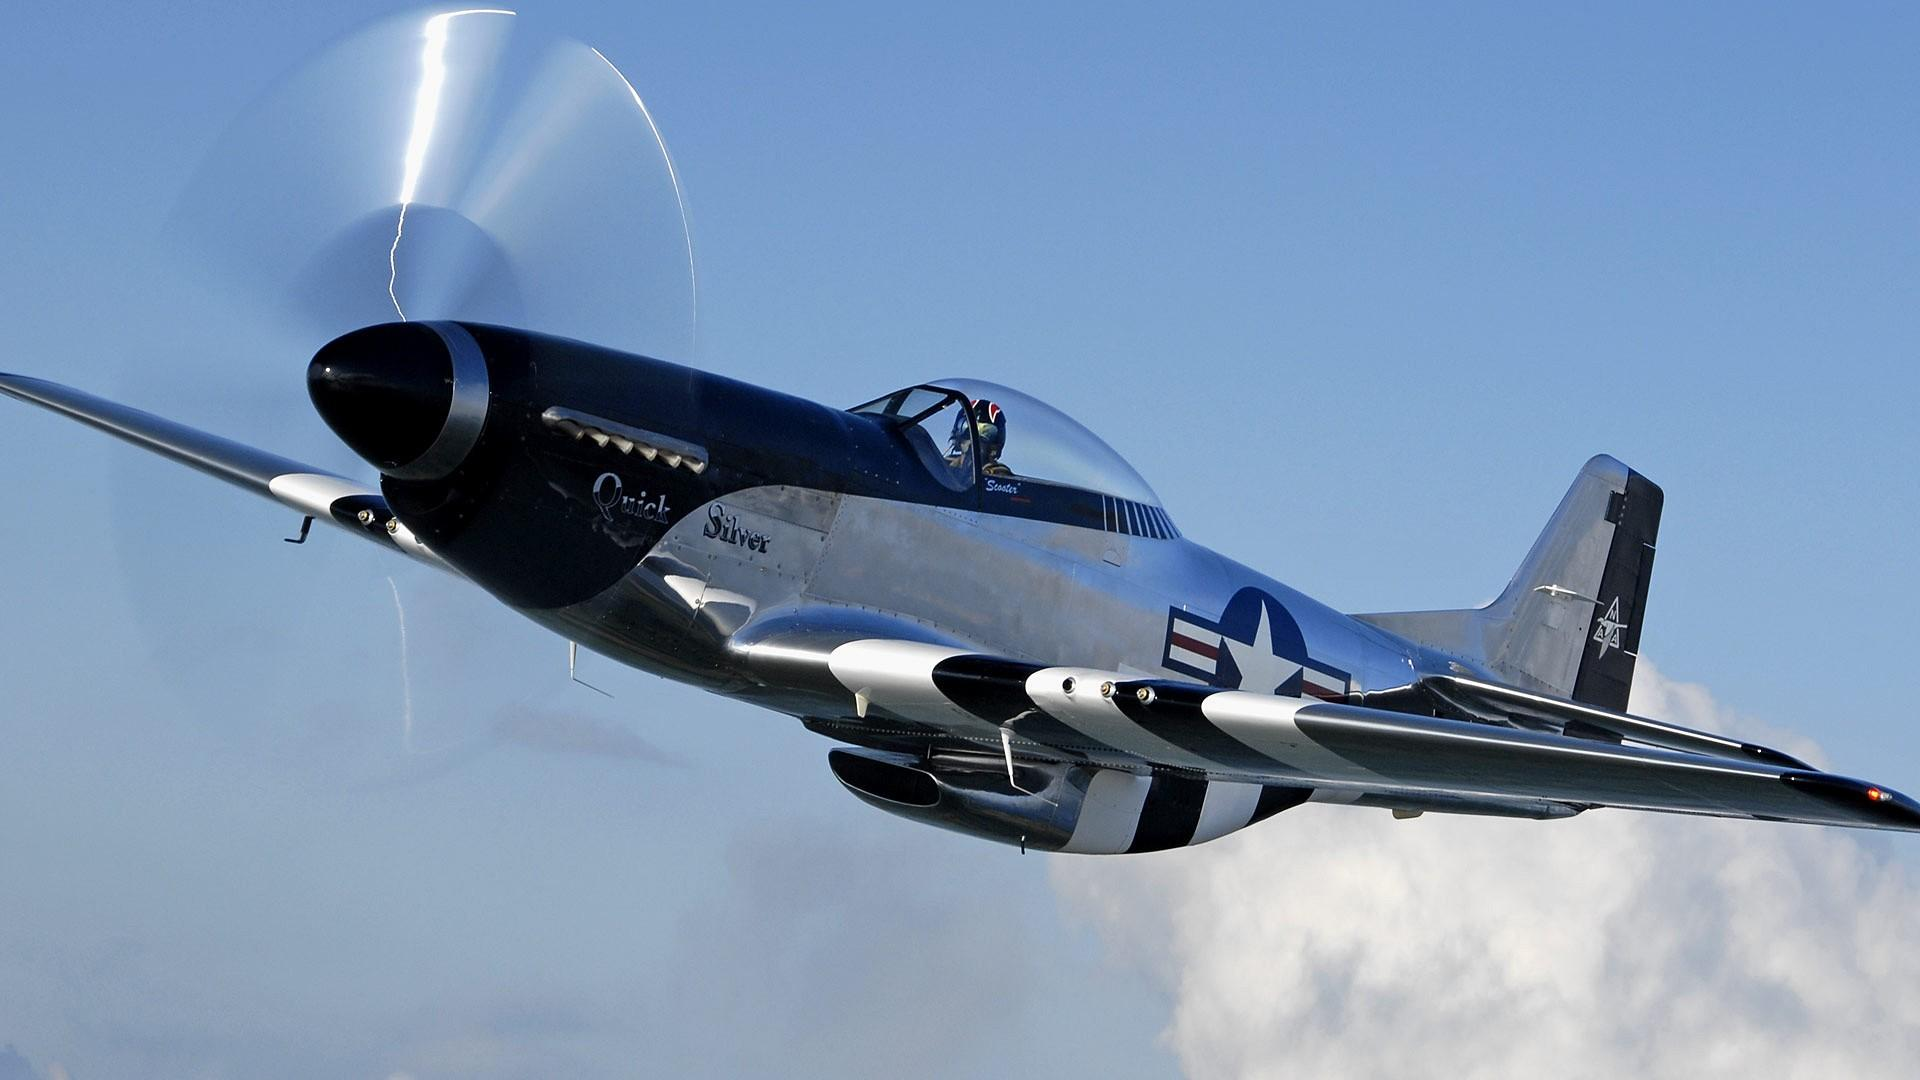 Aircraft warbird p 51 mustang wallpaper 35074 1920x1080